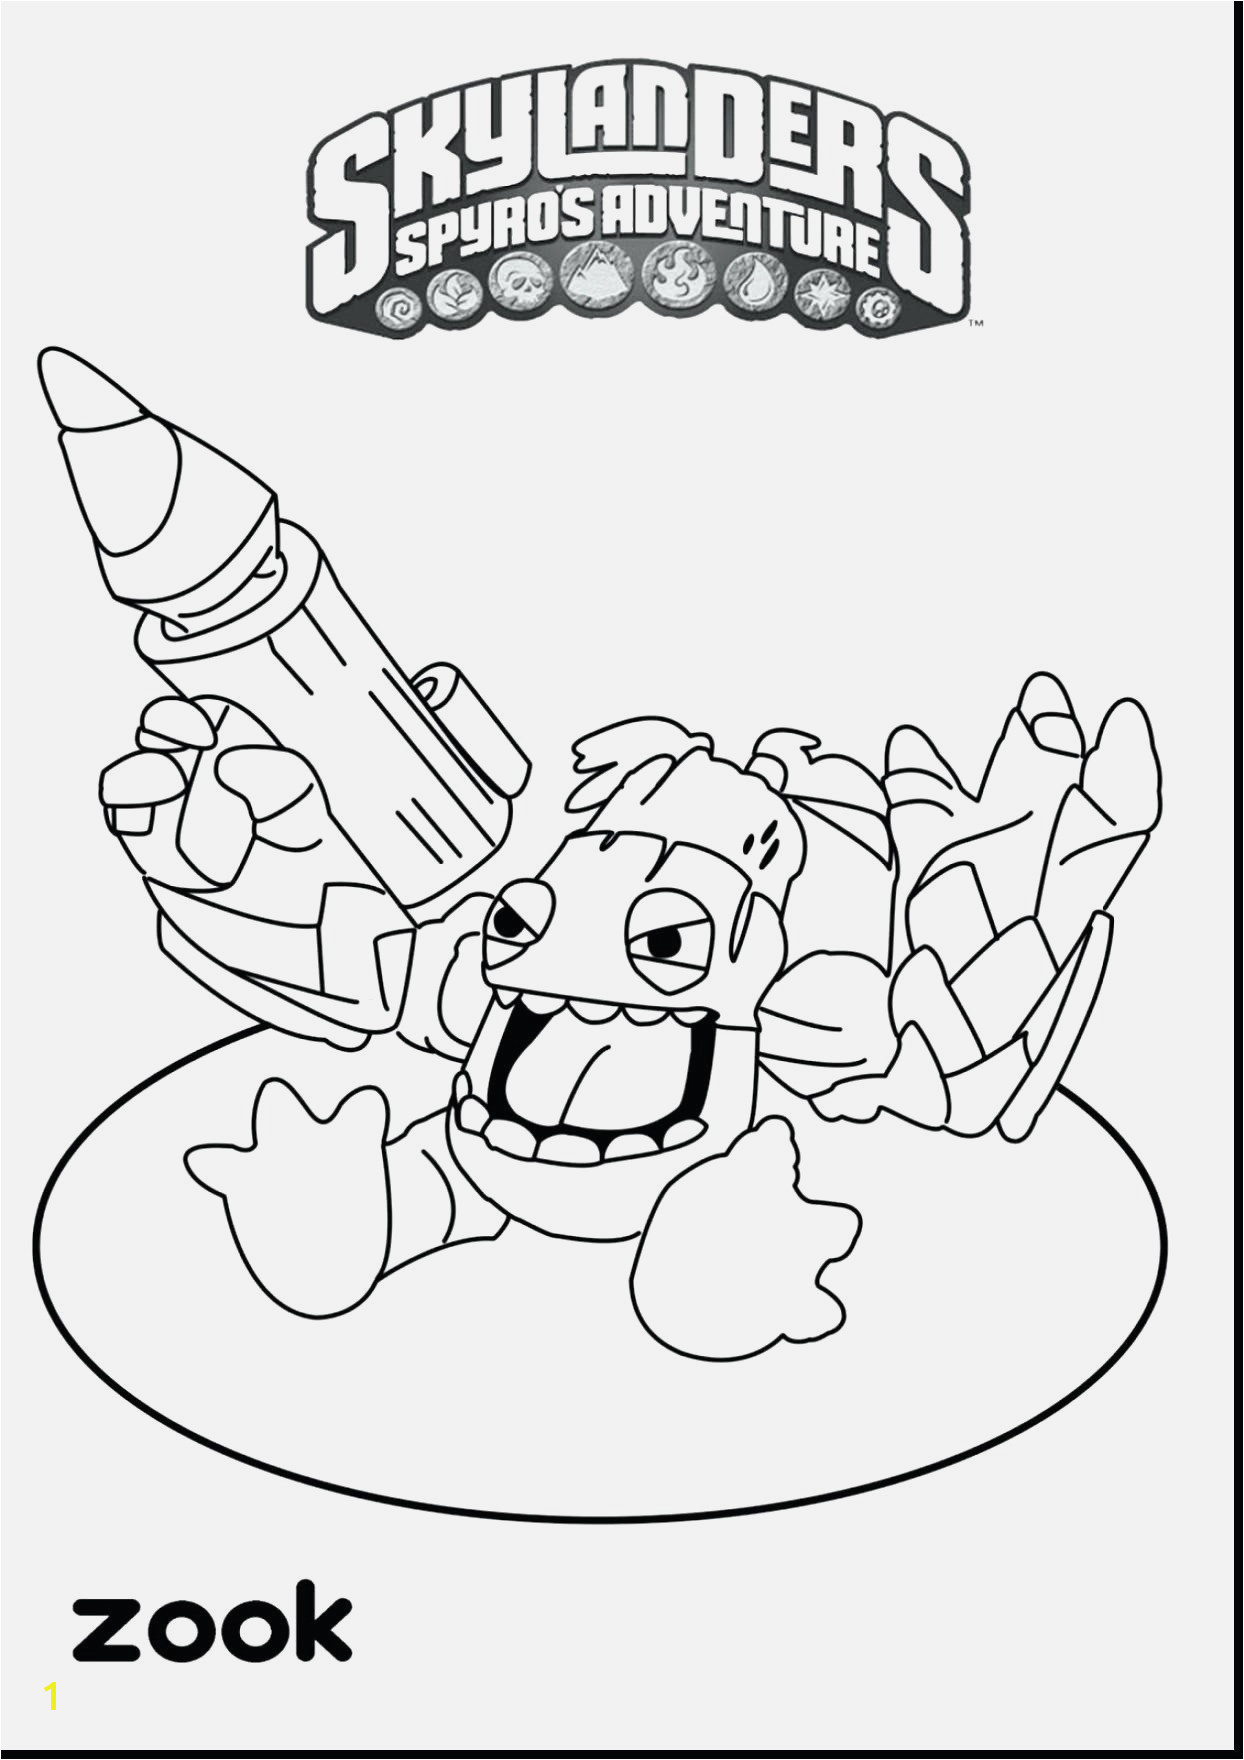 Cupcake Coloring Pages Free Printable 15 Luxury Cupcake Coloring Pages Cupcake Coloring Pages Best Easy